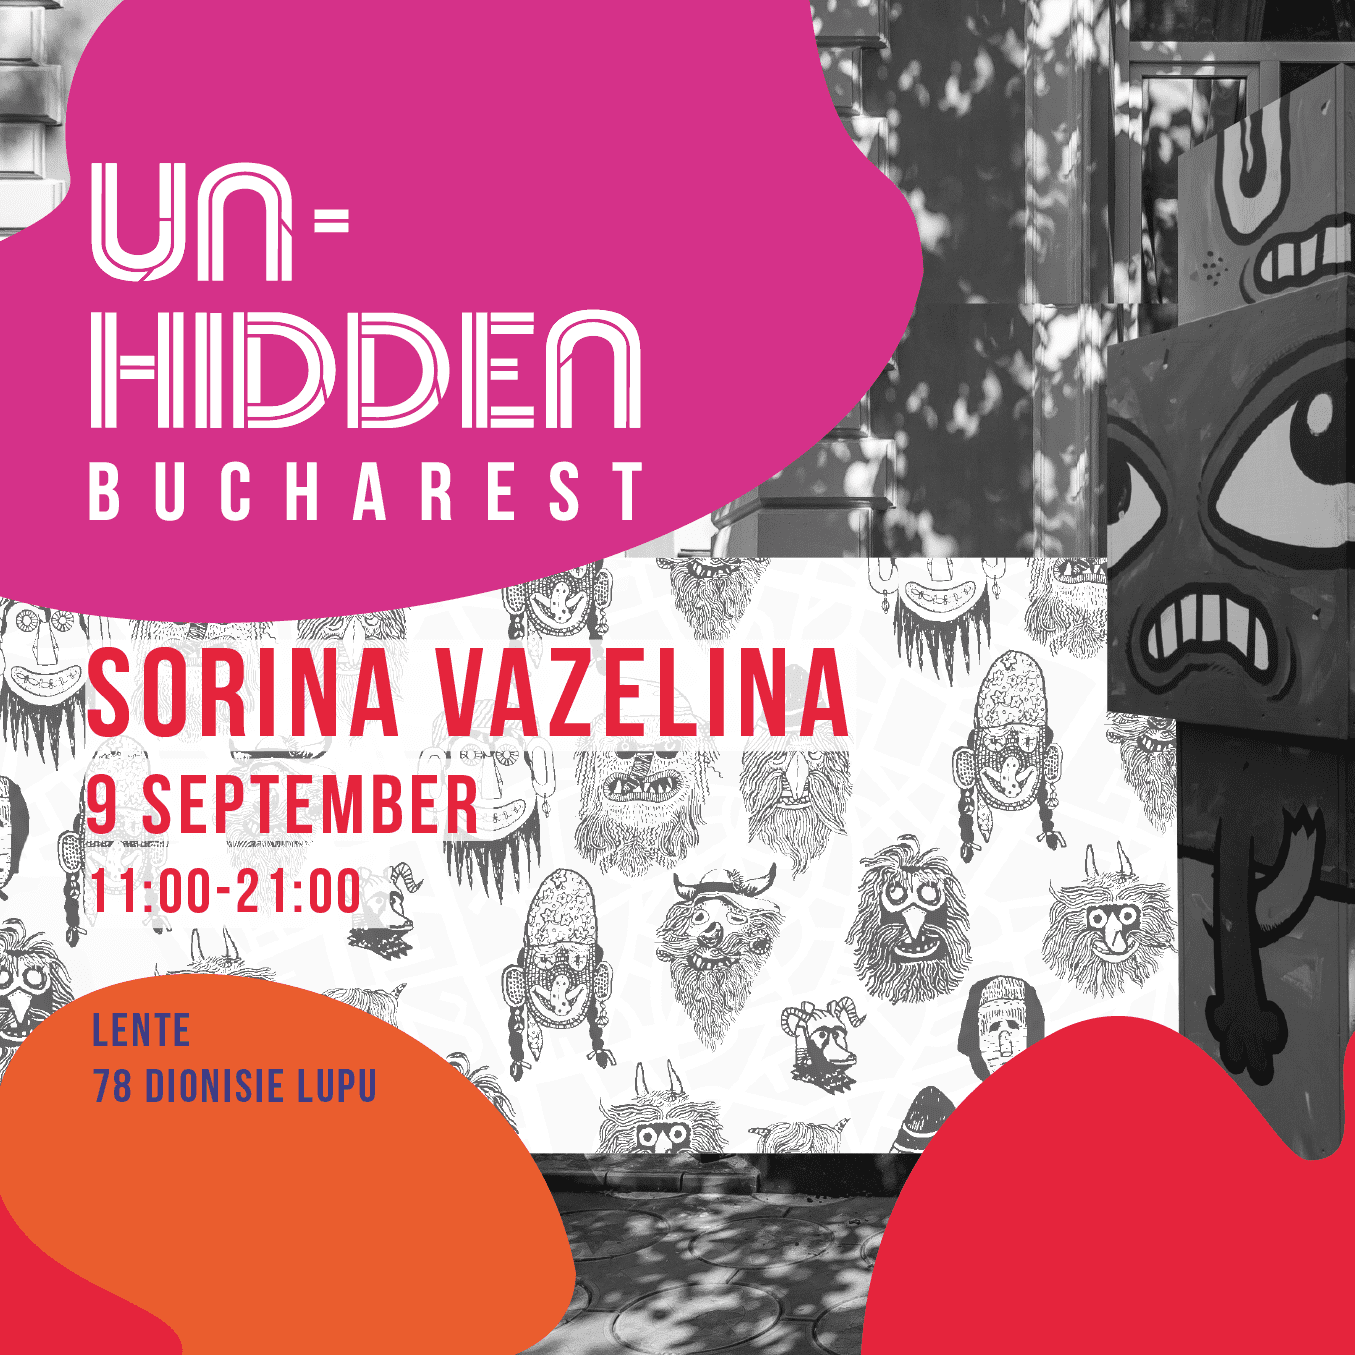 Un-hidden Bucharest Sorina Vazelina